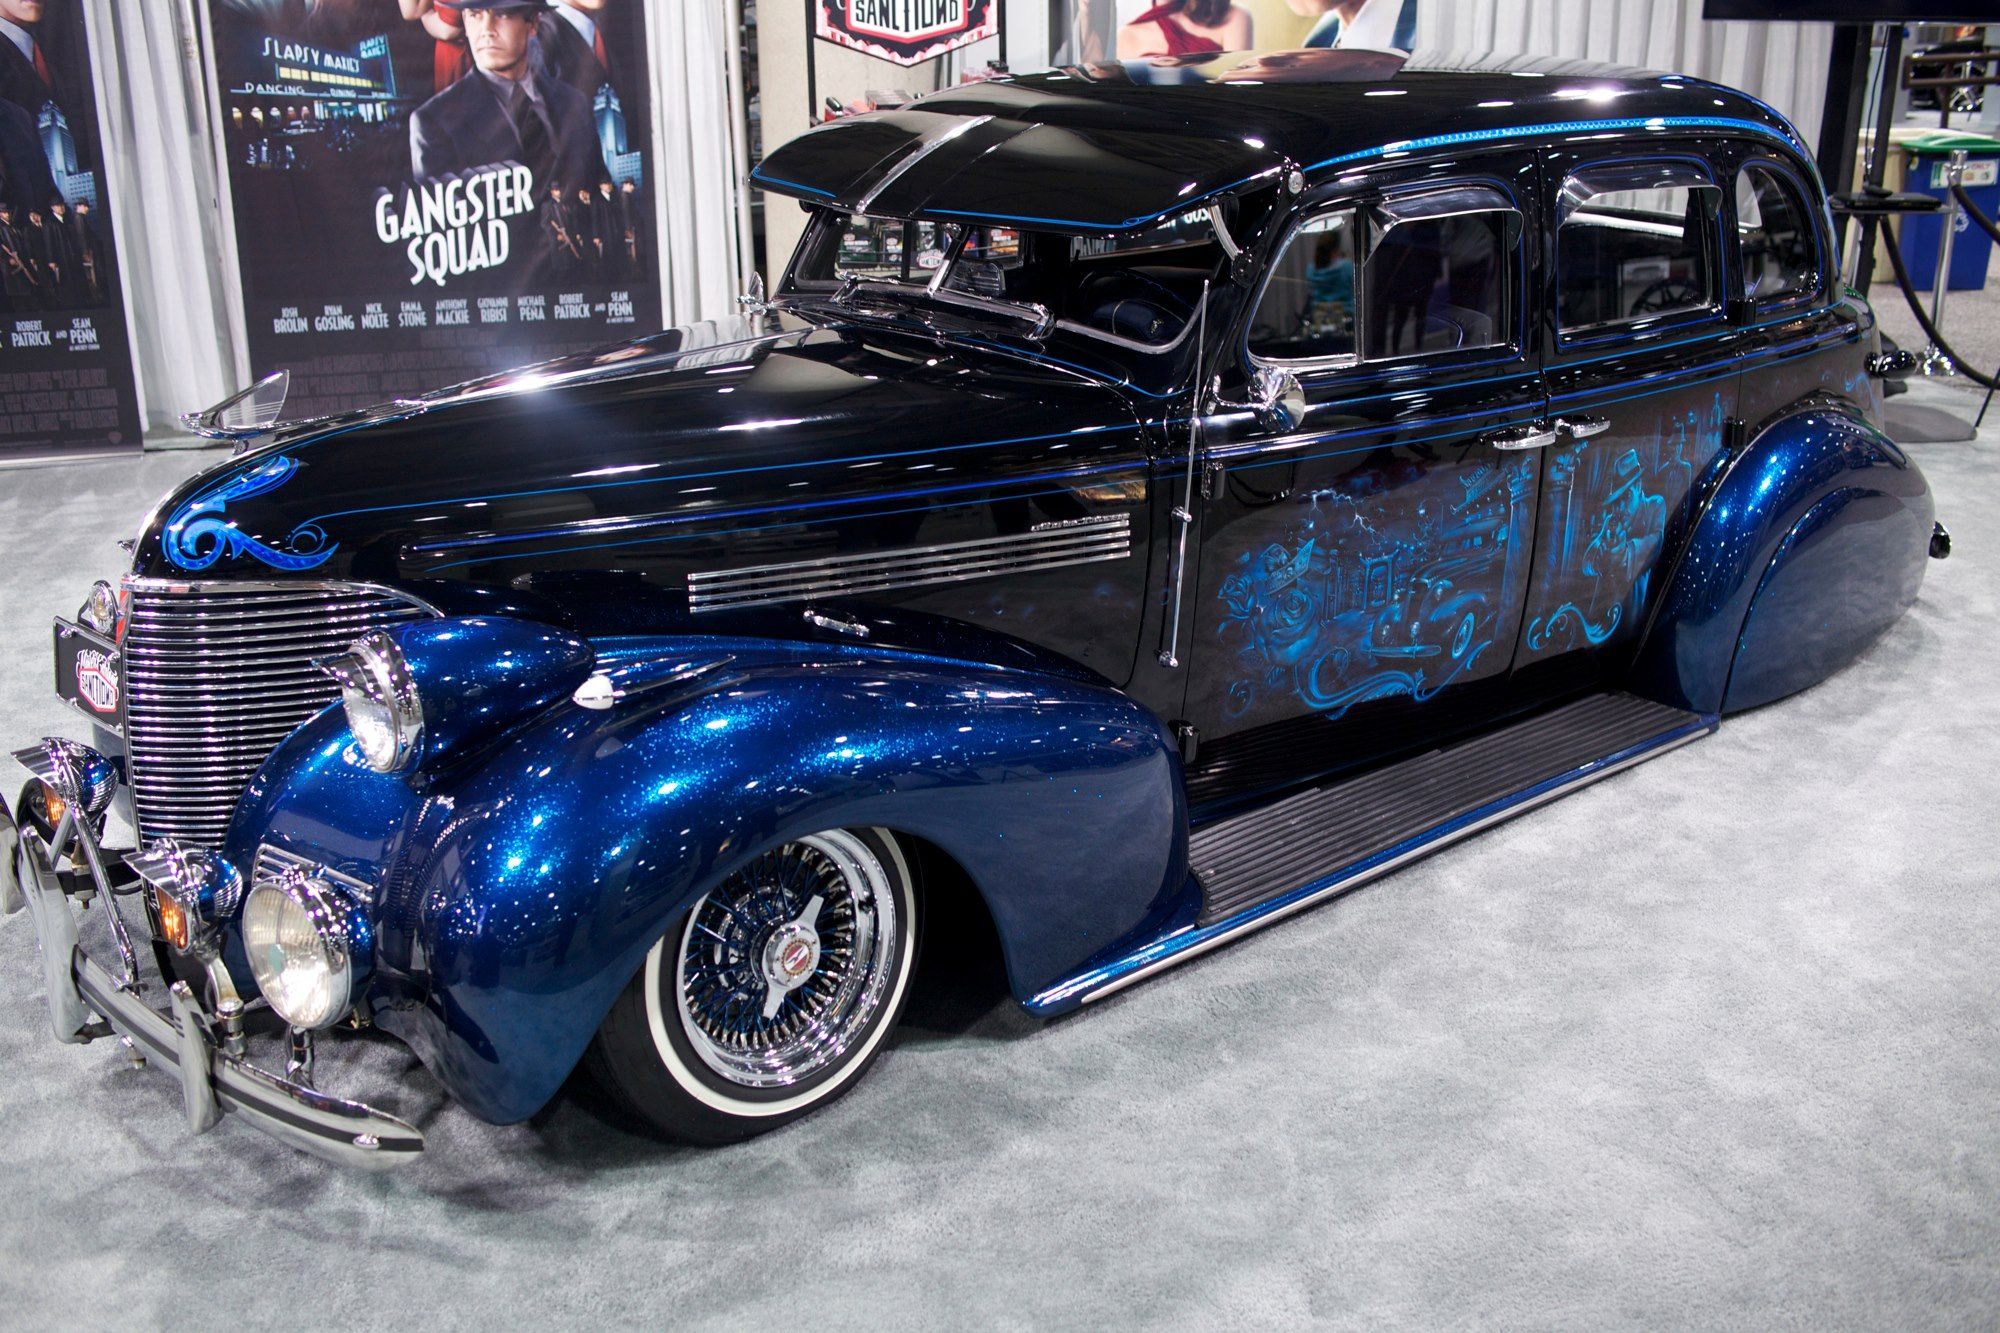 Los Angeles Car Show - Gangster Squad Opens in Theaters January ...